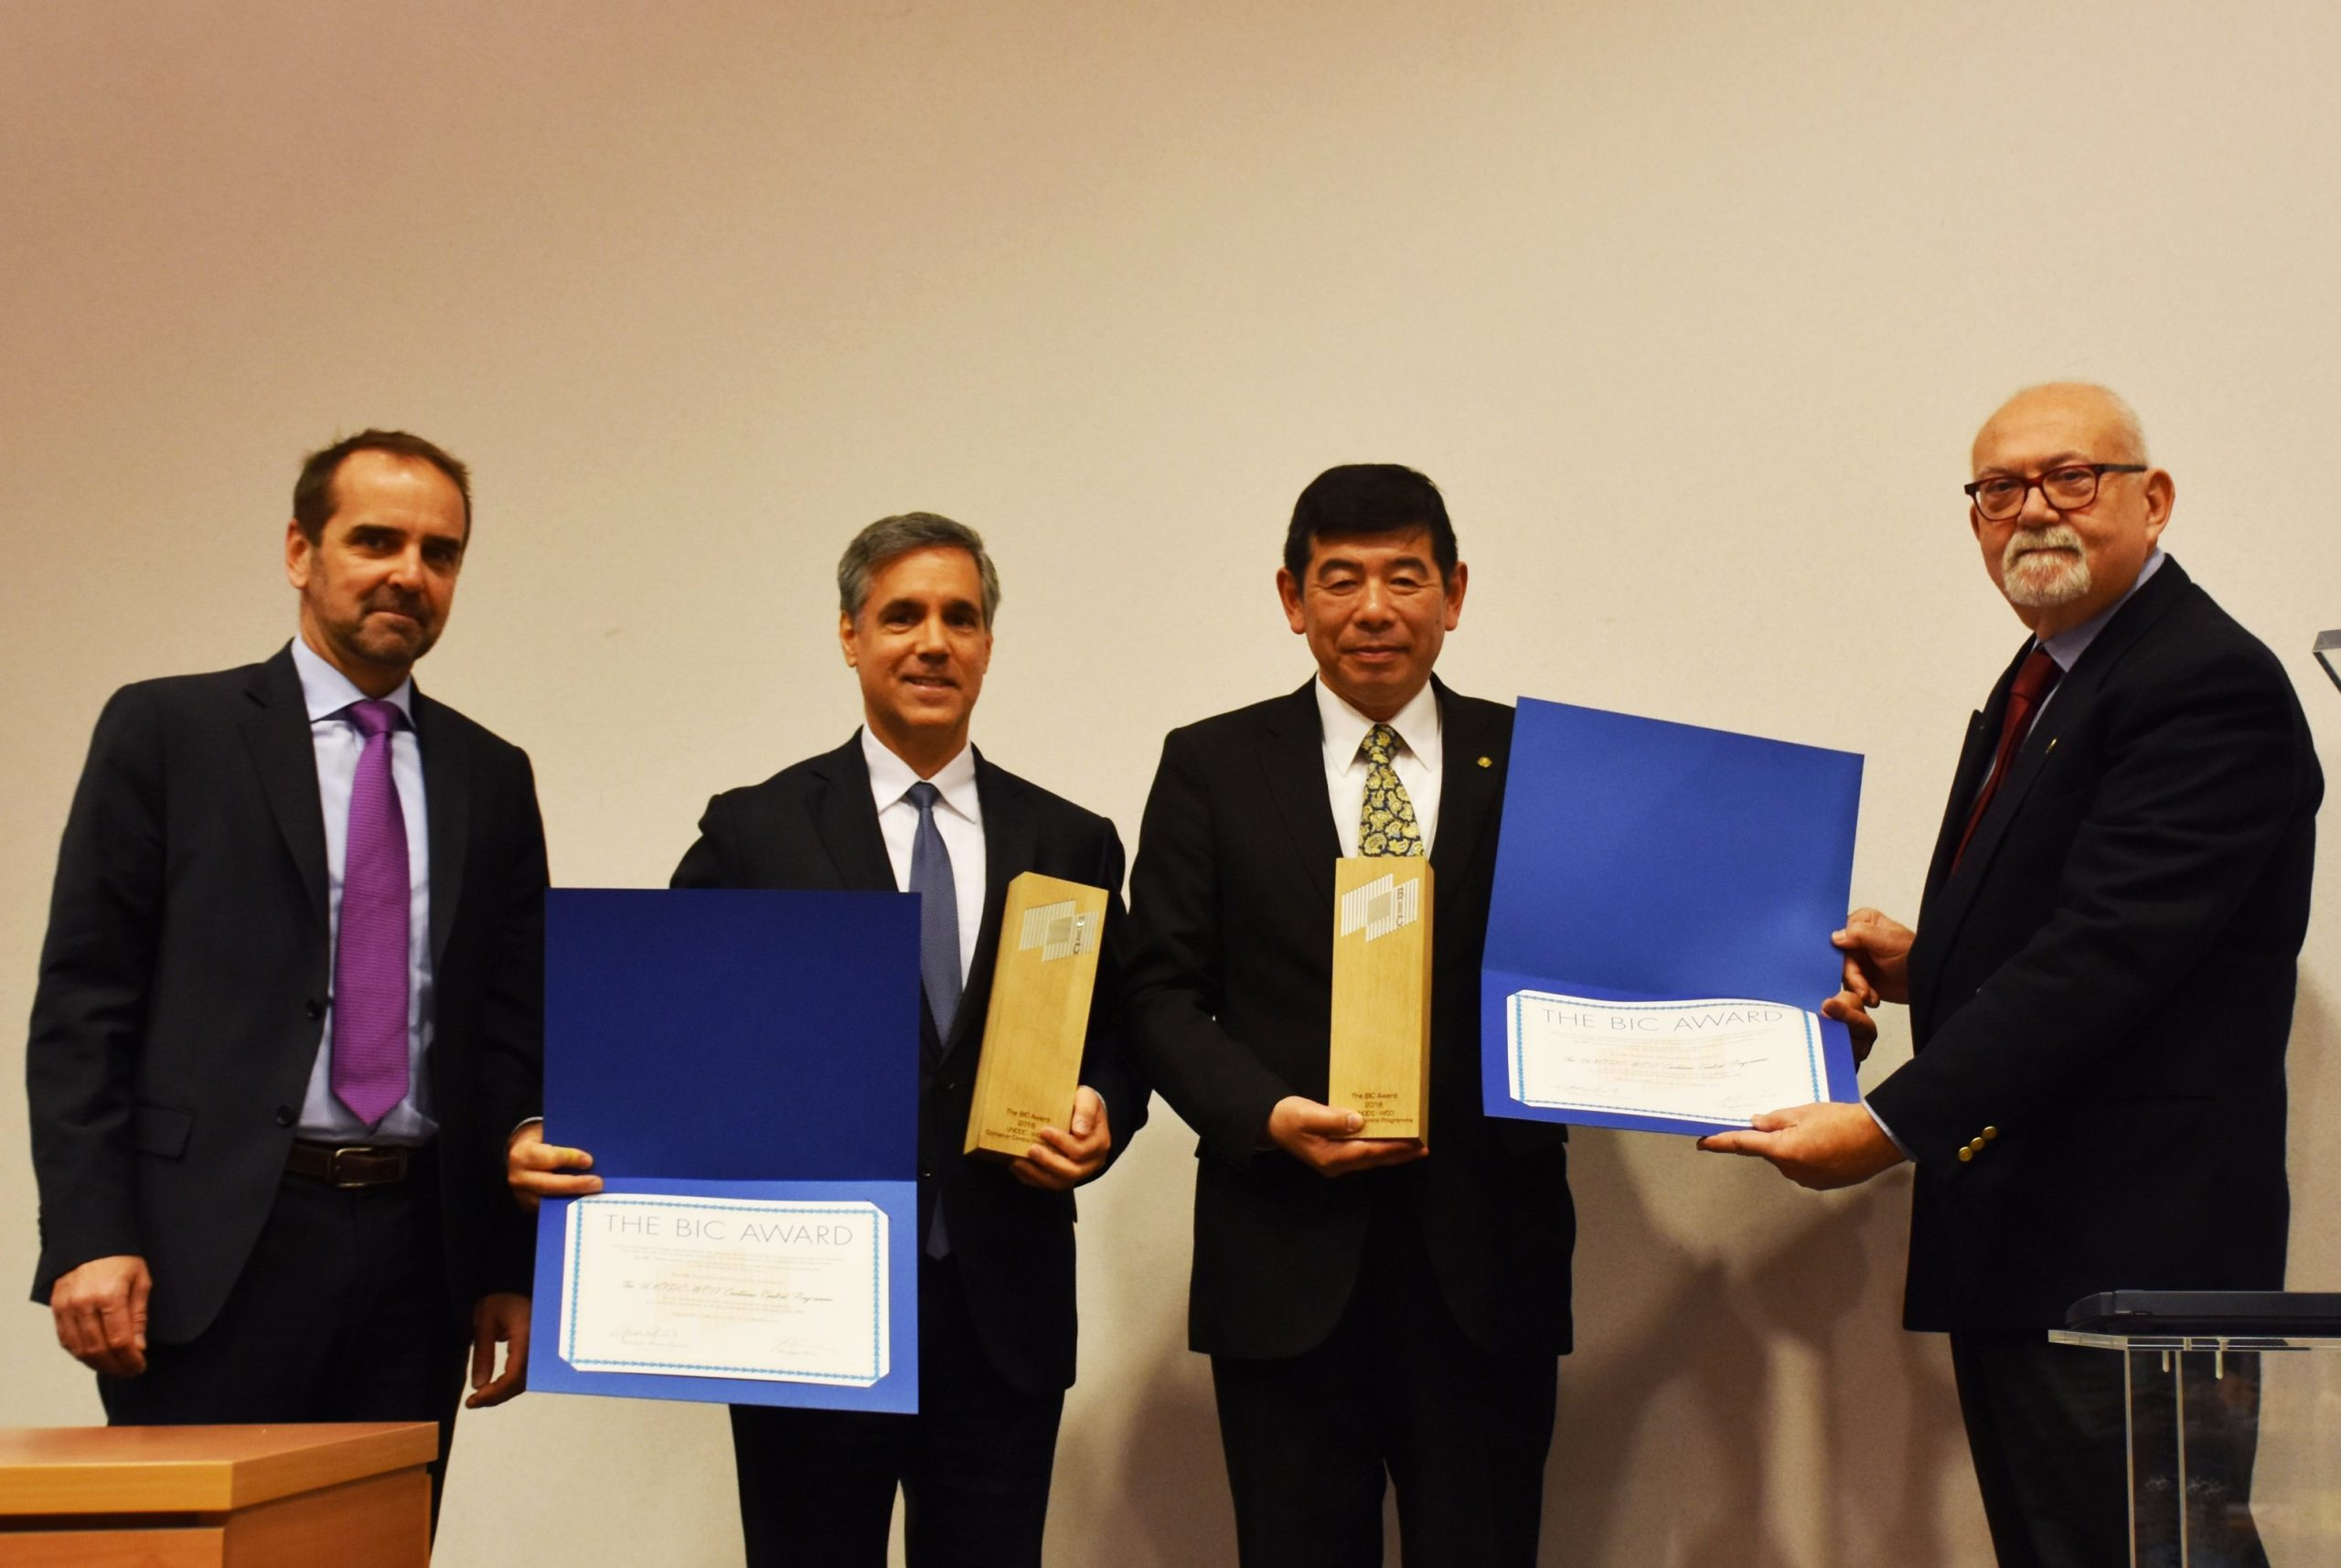 The Bureau International des Containers (BIC) is pleased to announce that the UNODC-WCO Container Control Programme (CCP) has won the 2018 BIC Award which was recently presented at the World Customs Organization headquarters in Brussels.